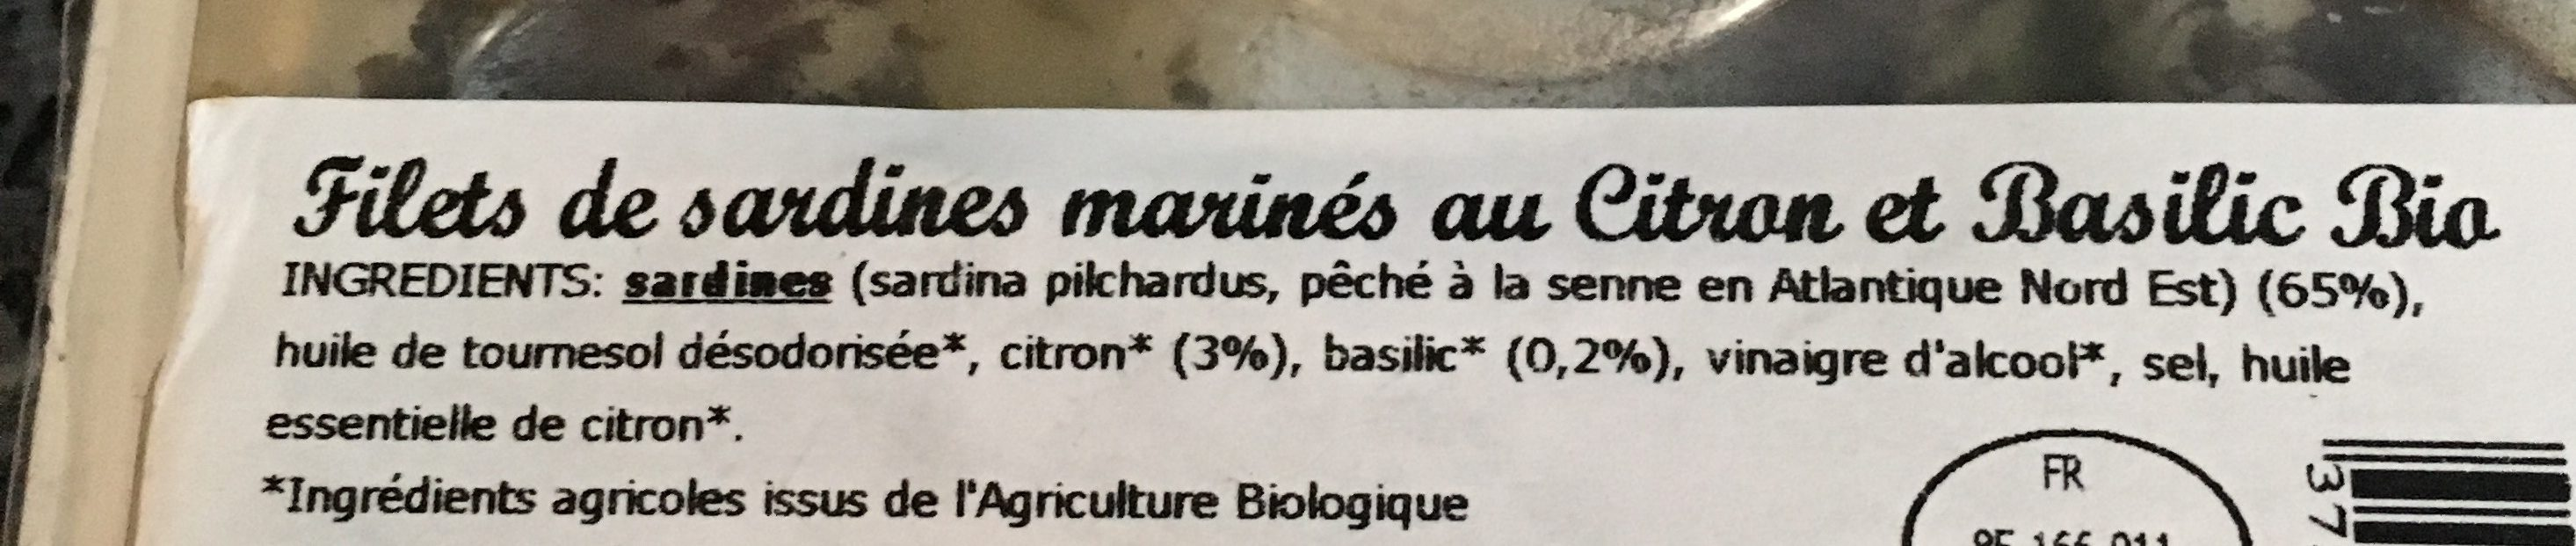 Sardines Marinees Citron Et Basilic - Ingredients - fr